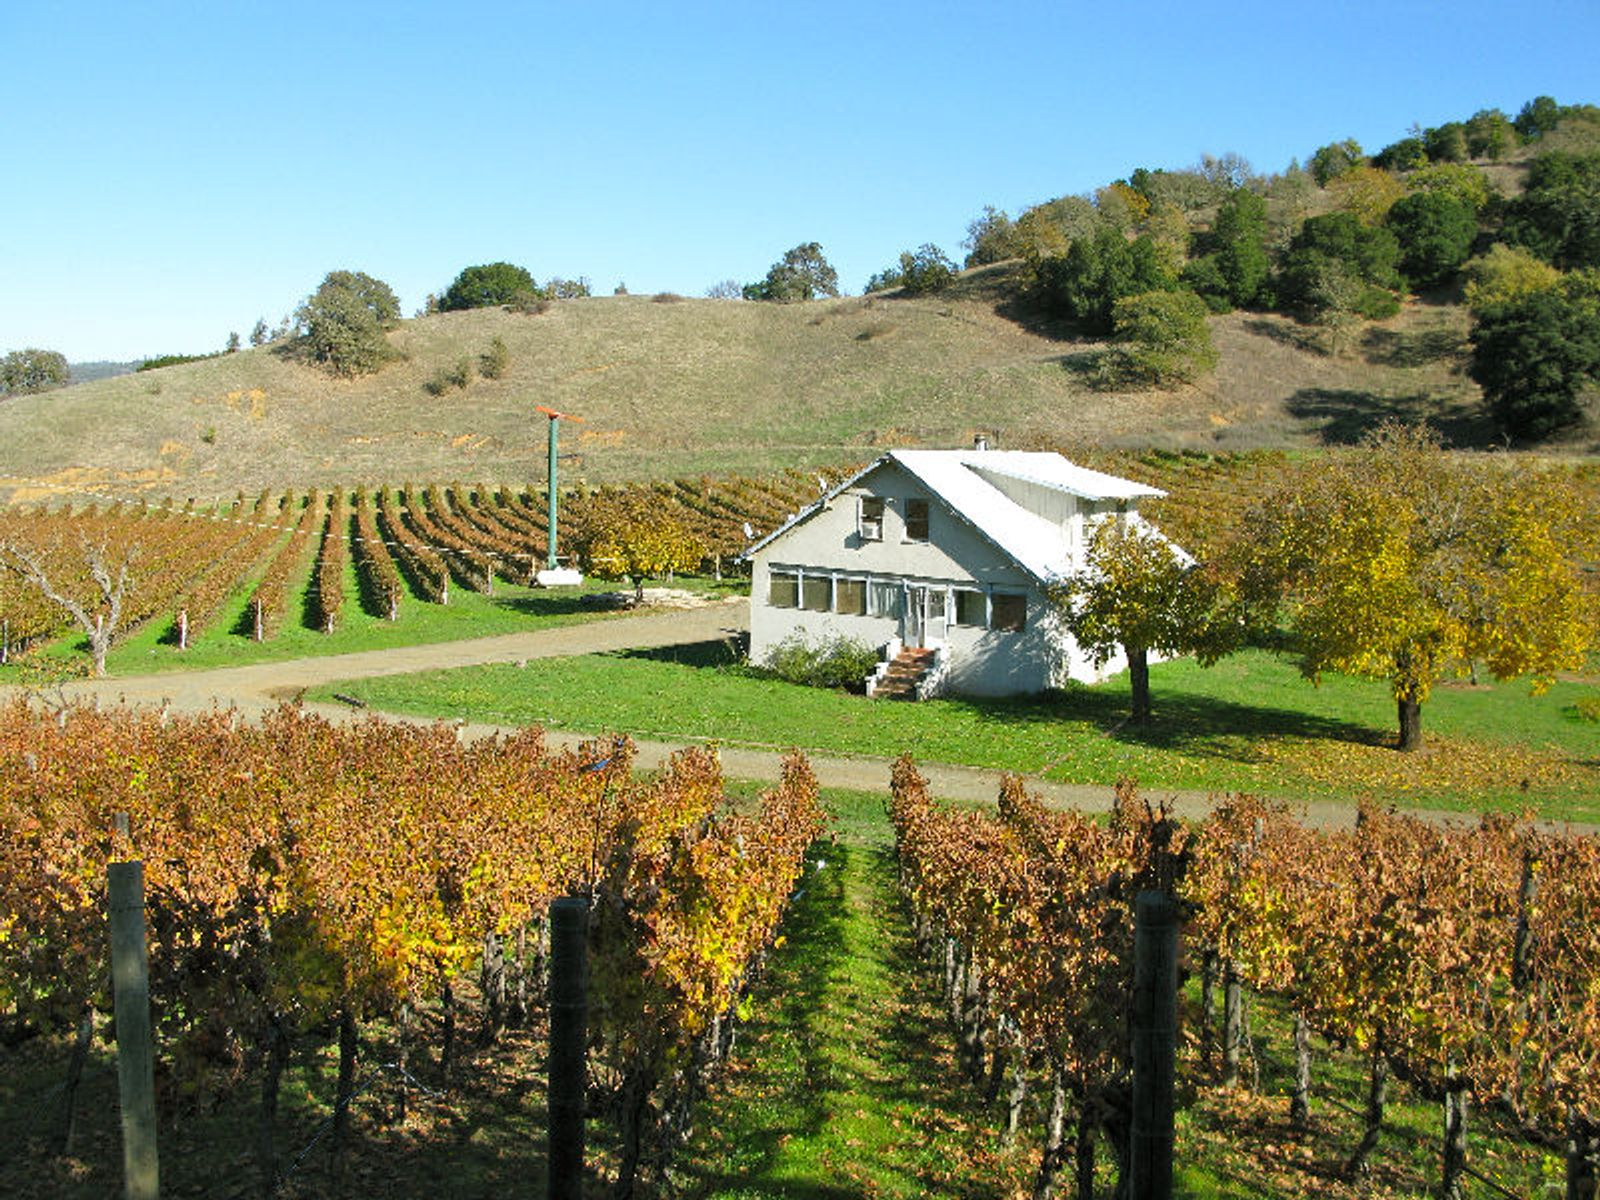 St. Helena Winery For Sale, Saint Helena CA Ranch / Farm - Sonoma - Napa Real Estate